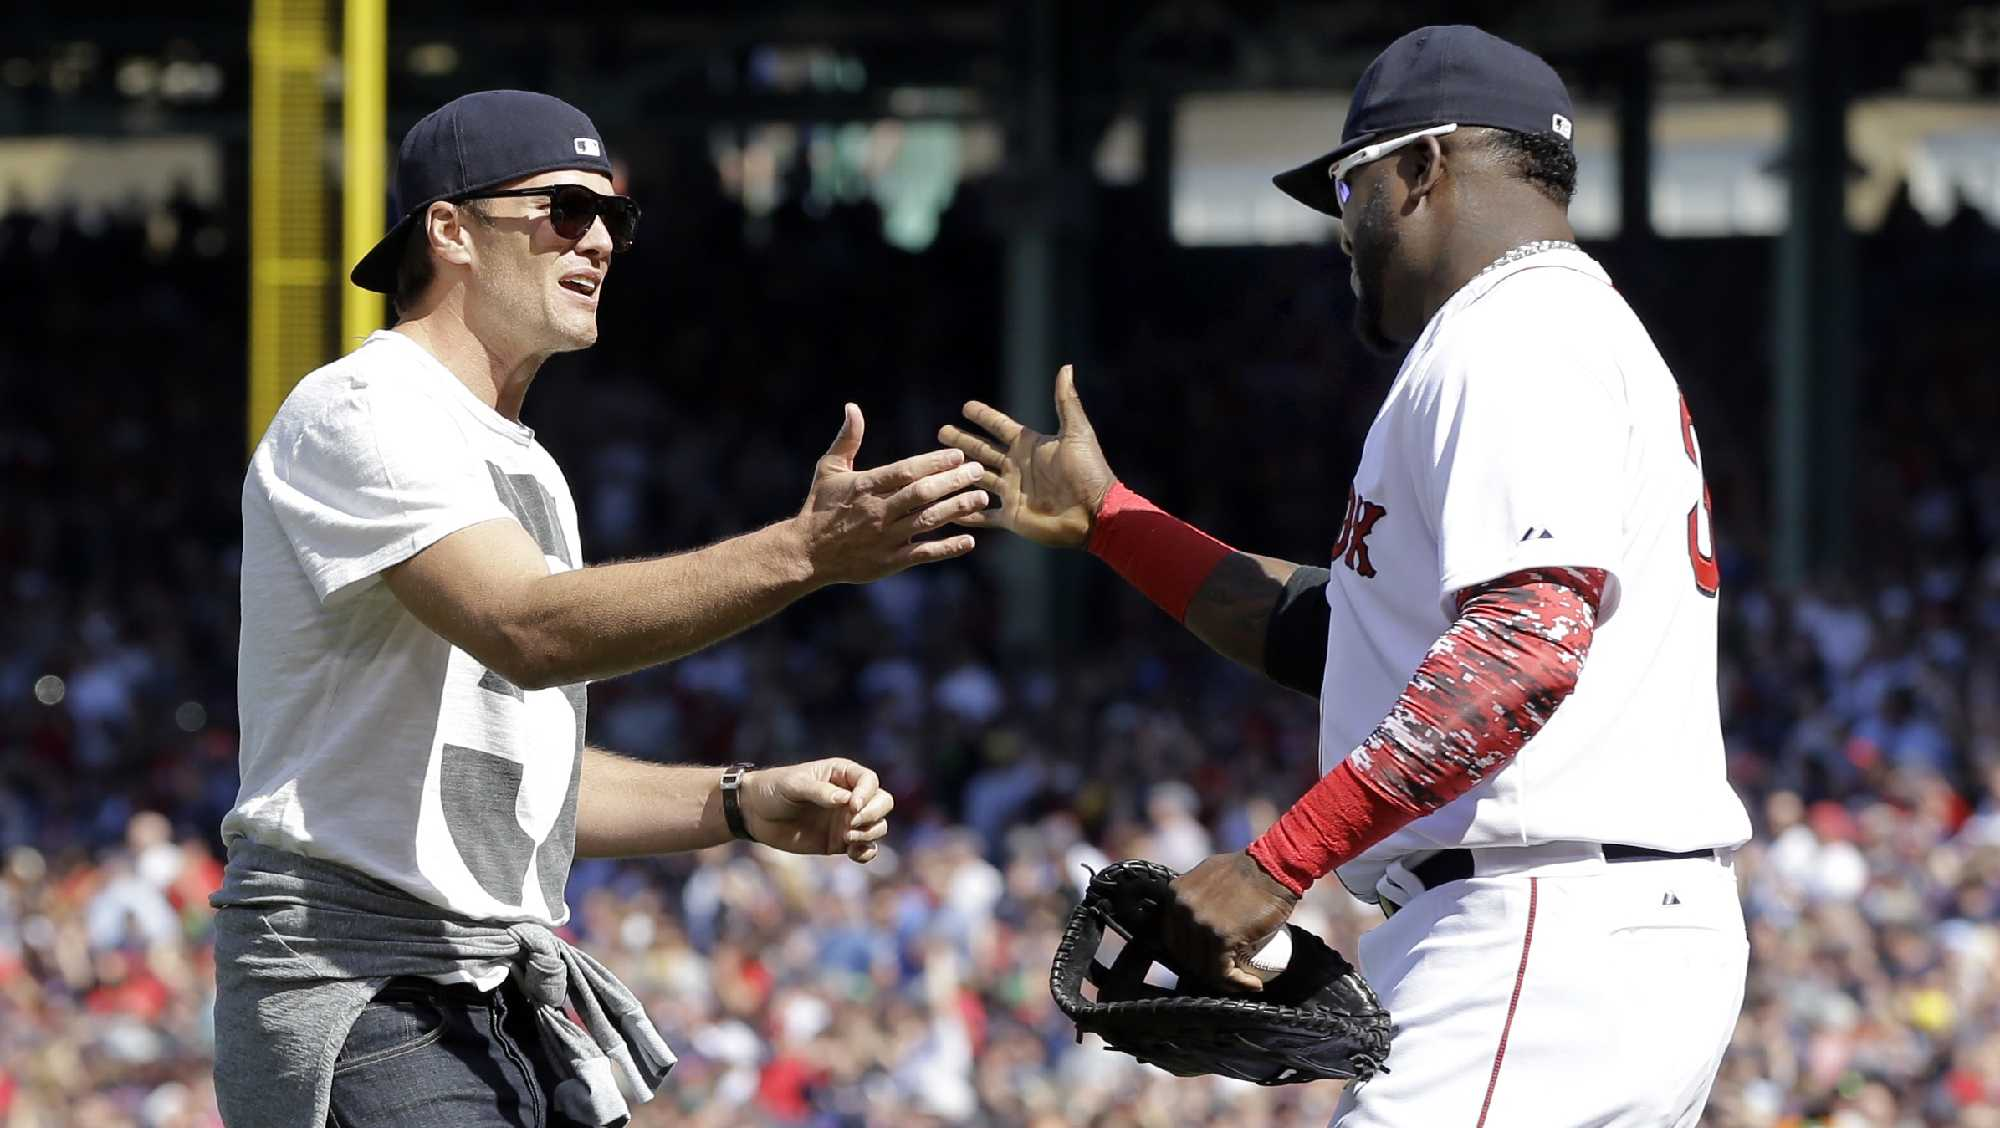 New England Patriots quarterback Tom Brady, left, greets Boston Red Sox's David Ortiz after throwing the ceremonial first pitch prior to the home opener baseball game between the Boston Red Sox and the Washington Nationals at Fenway Park in Boston, Monday, April 13, 2015.